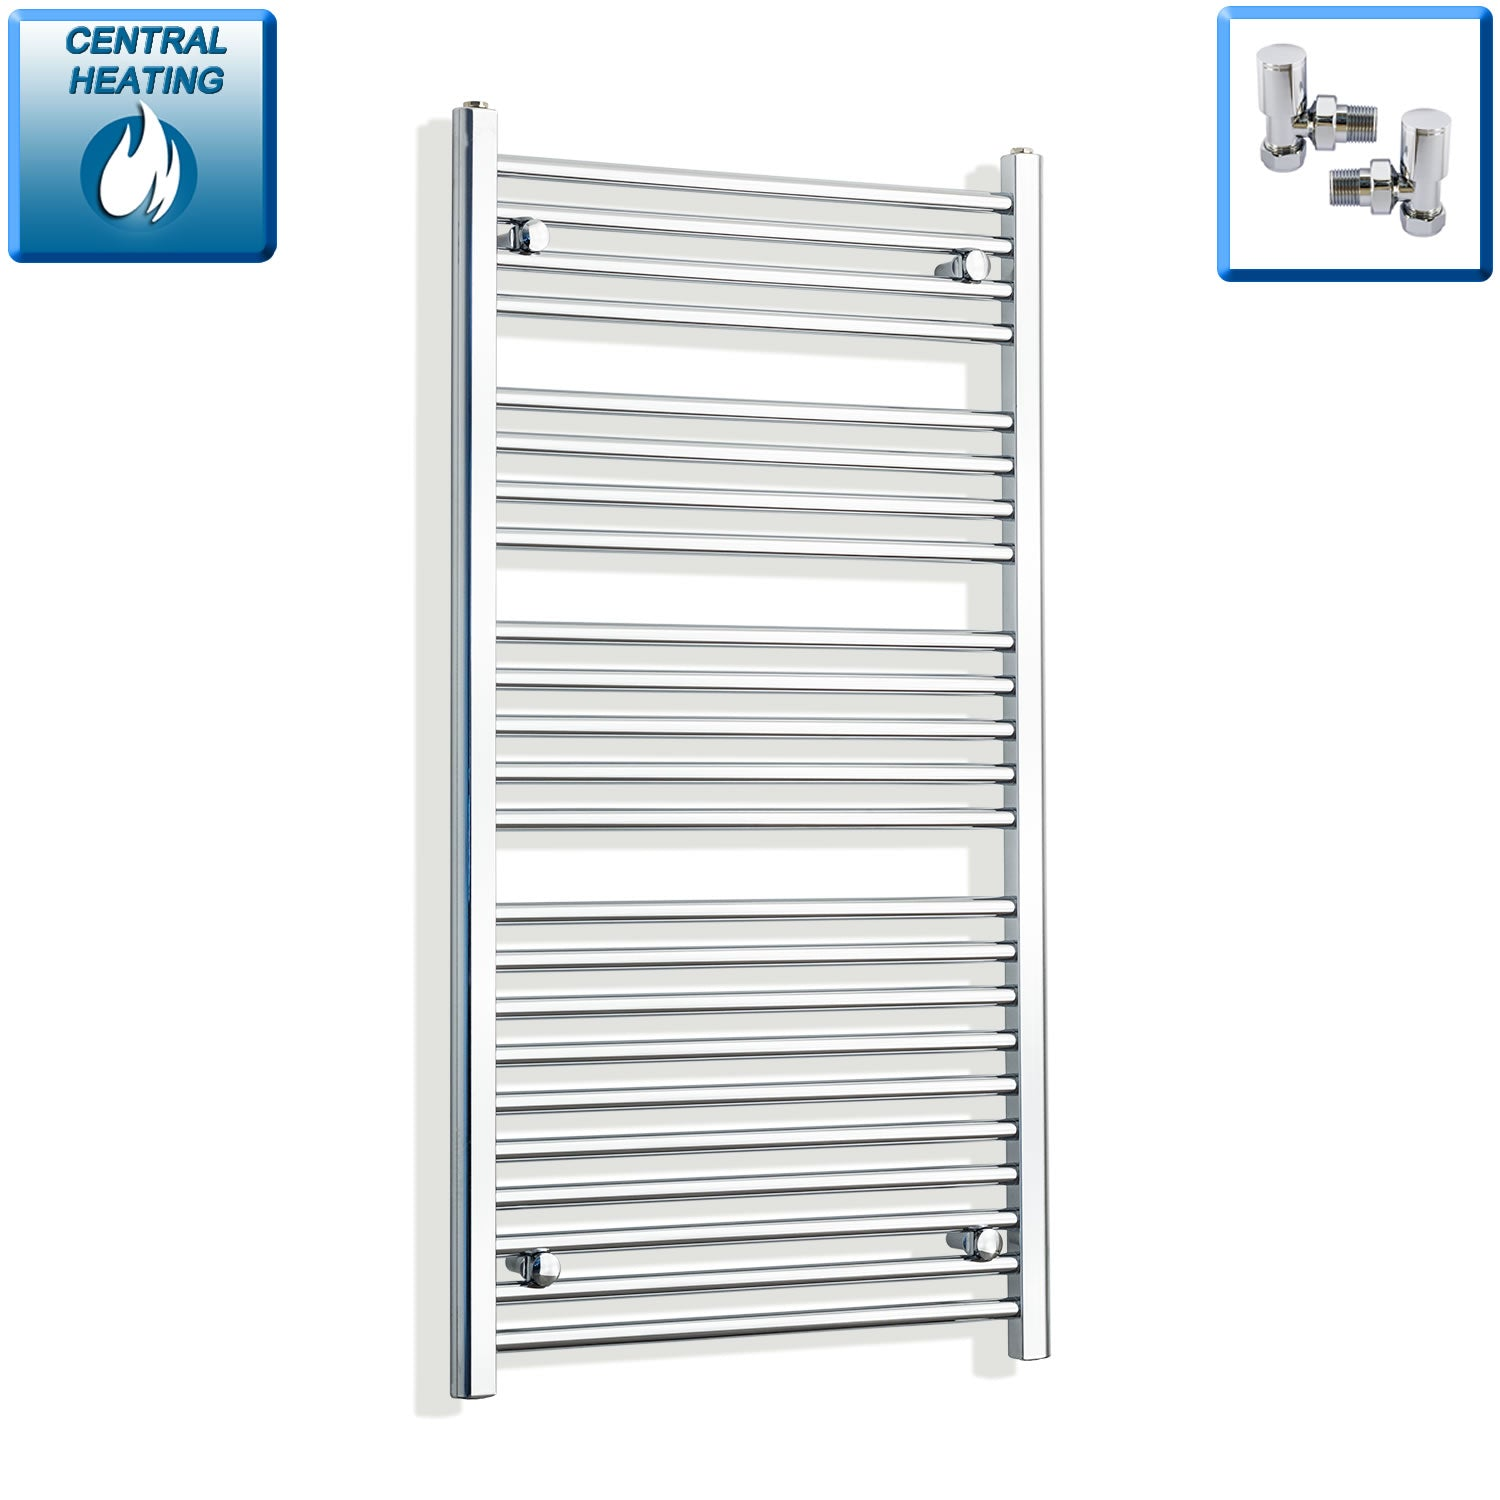 650mm Wide 1200mm High Chrome Towel Rail Radiator With Angled Valve